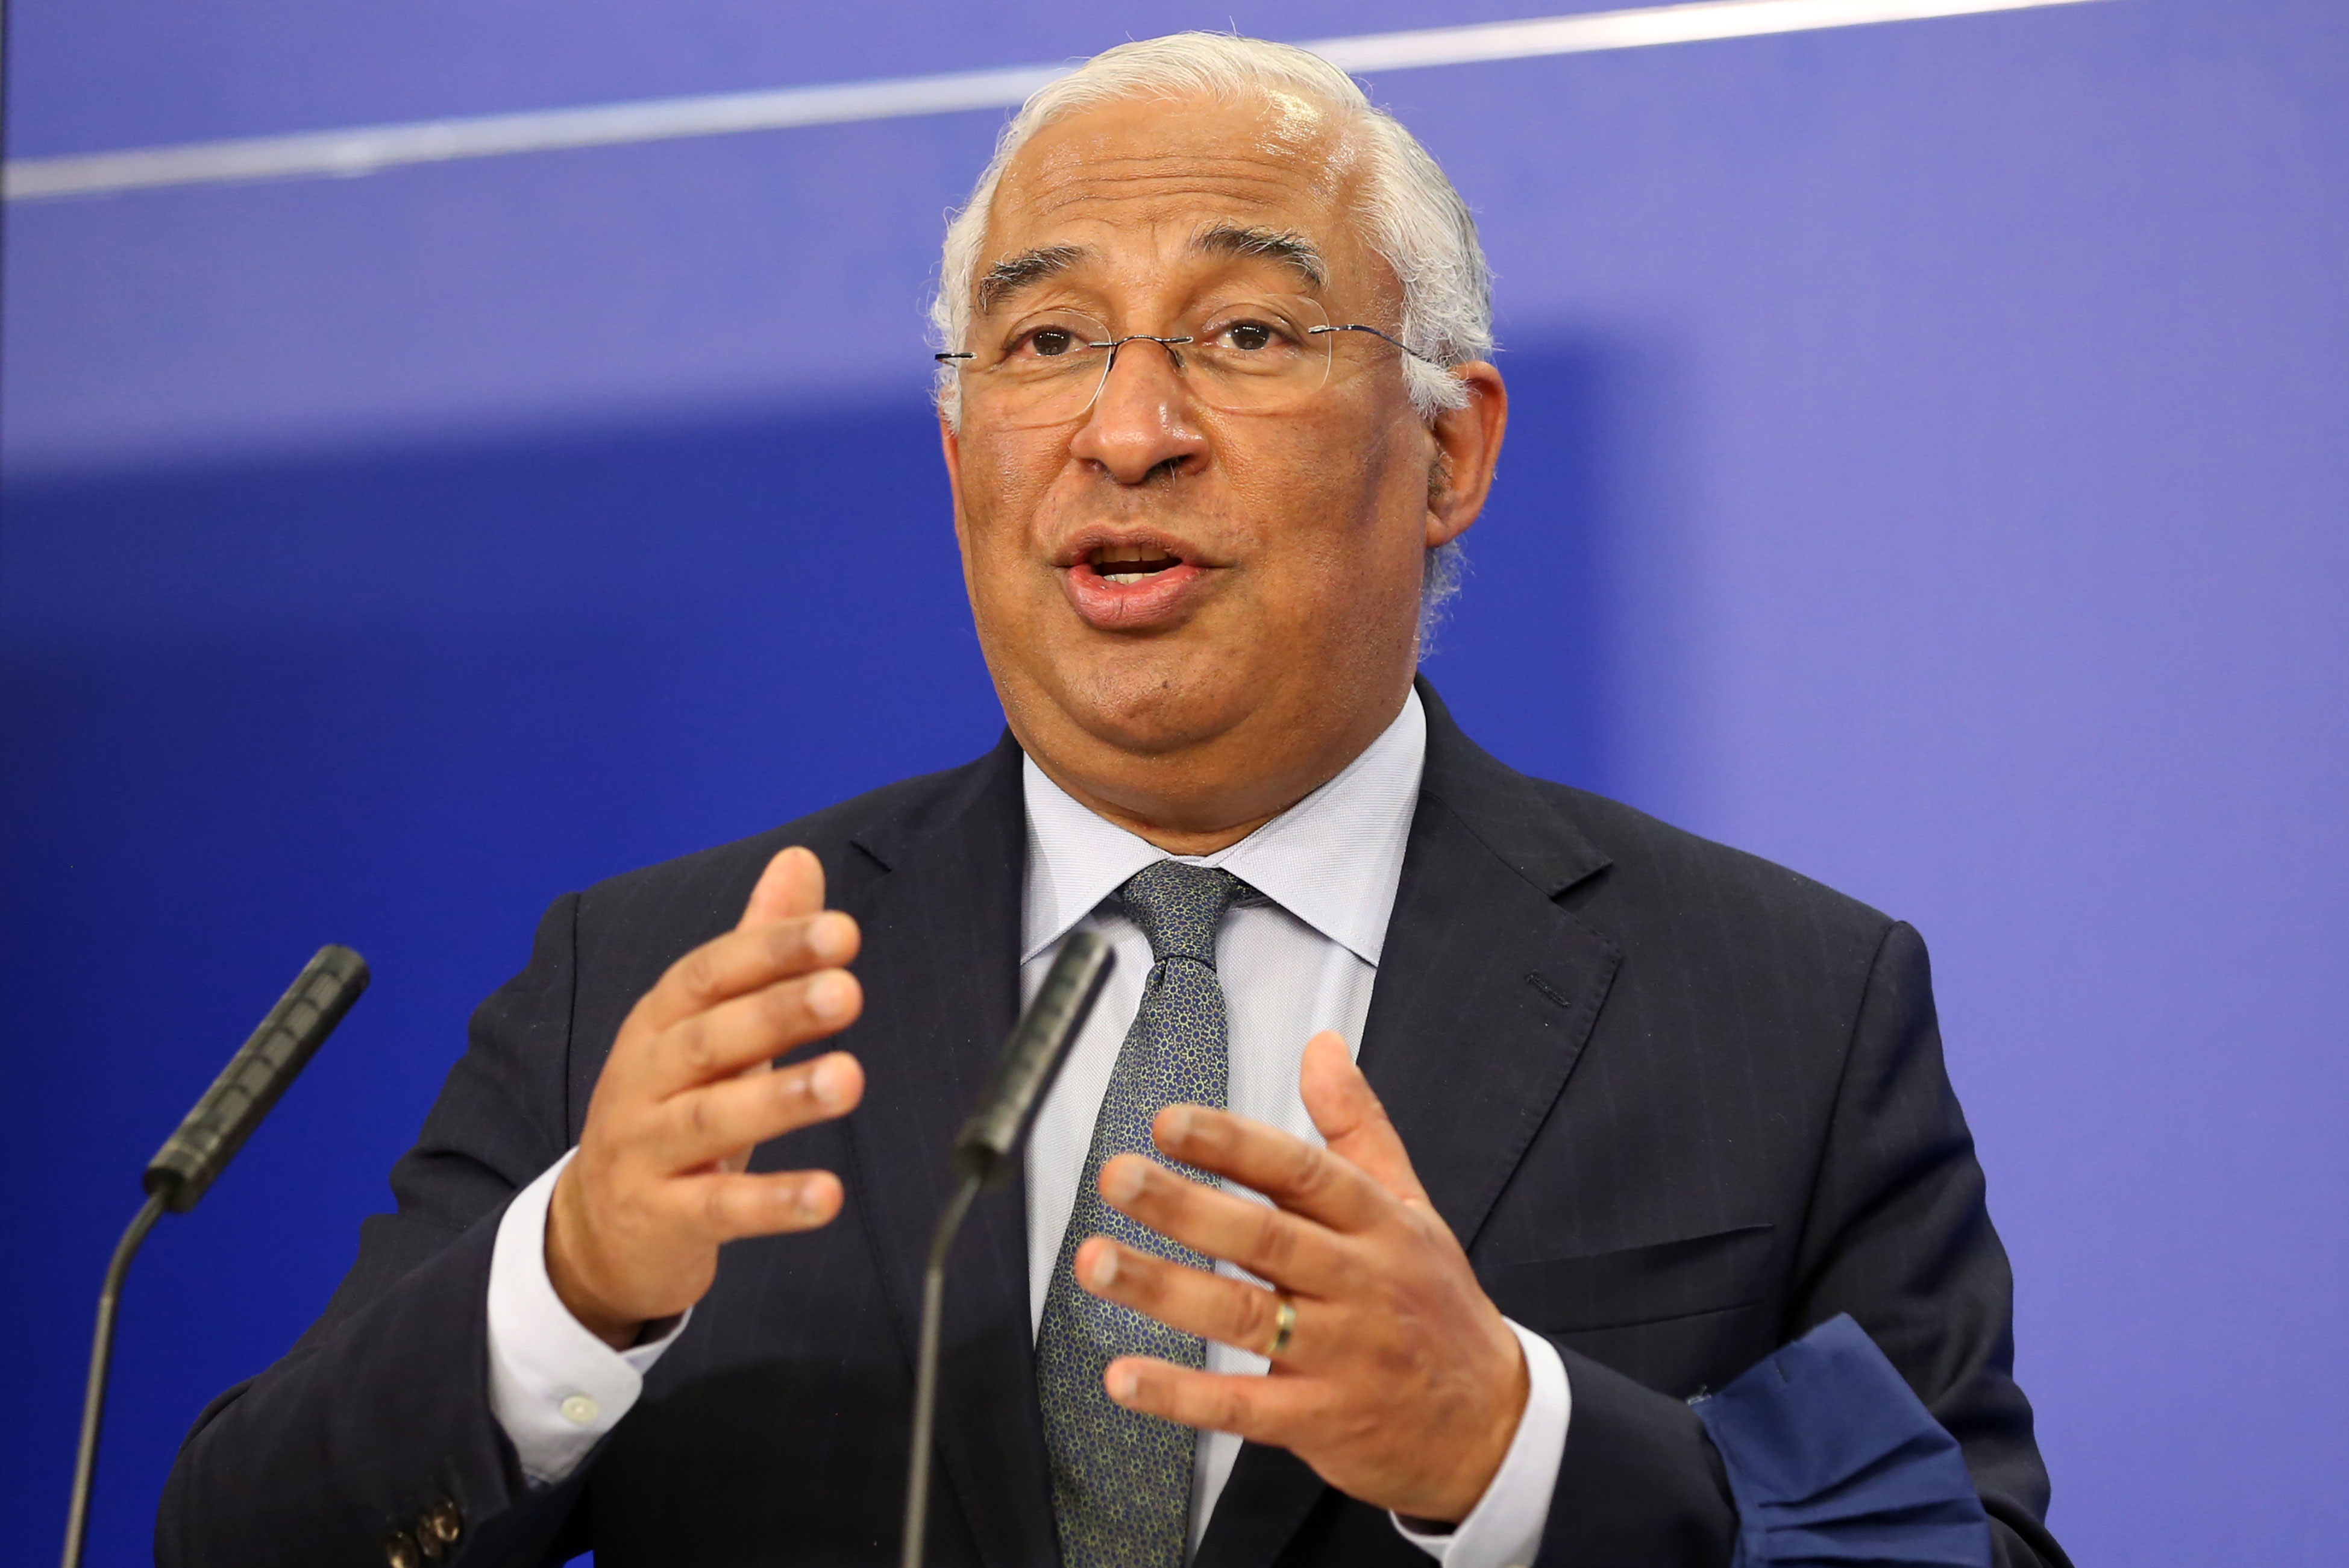 Portuguese Prime Minister António Costa speaks at a news conference in Brussels, Belgium, on January 20.